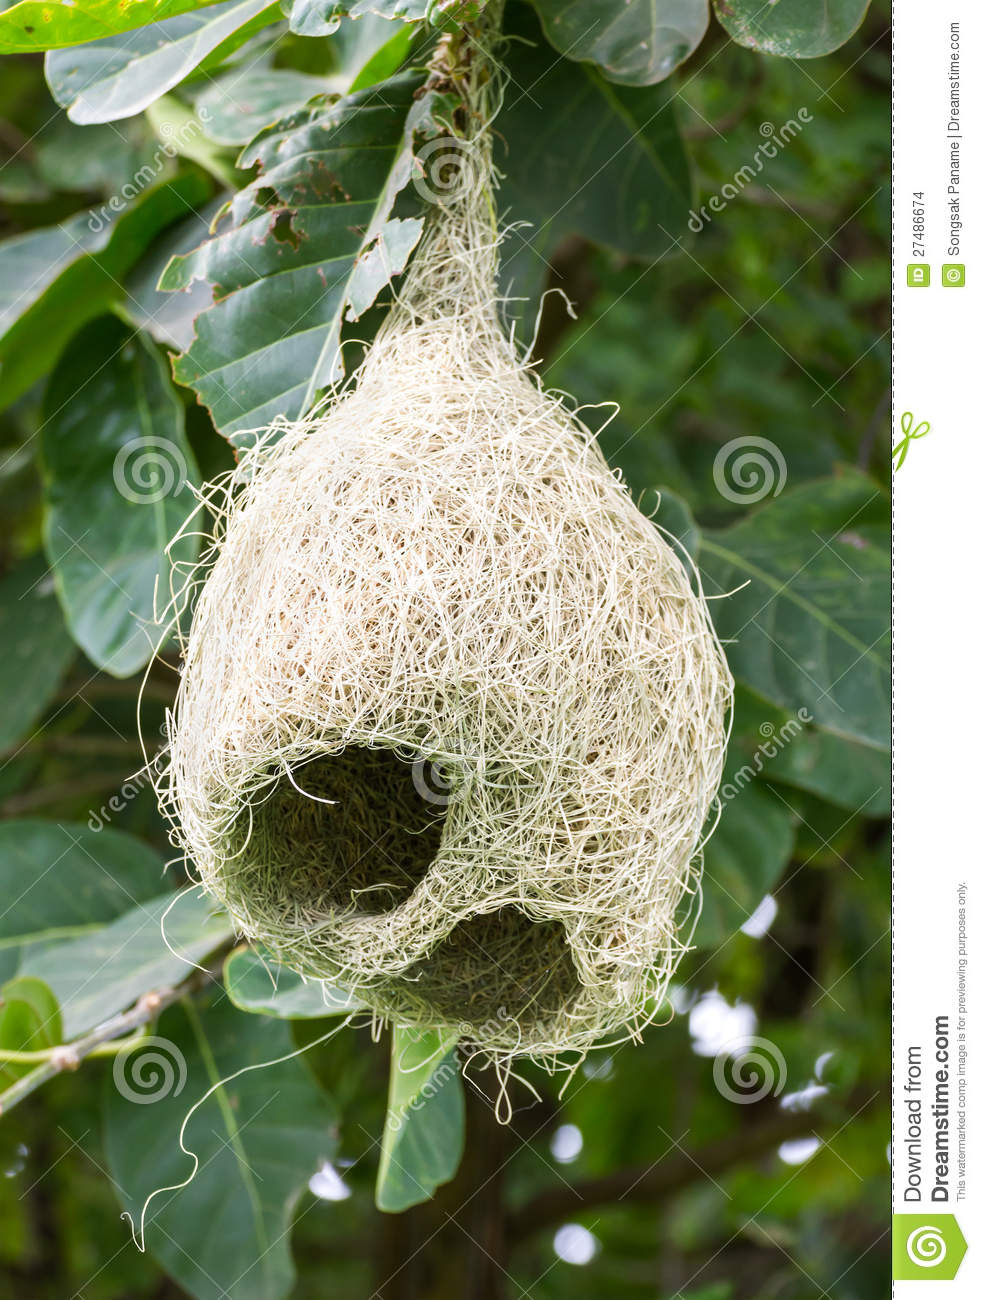 Weaver bird nest pictures - photo#23